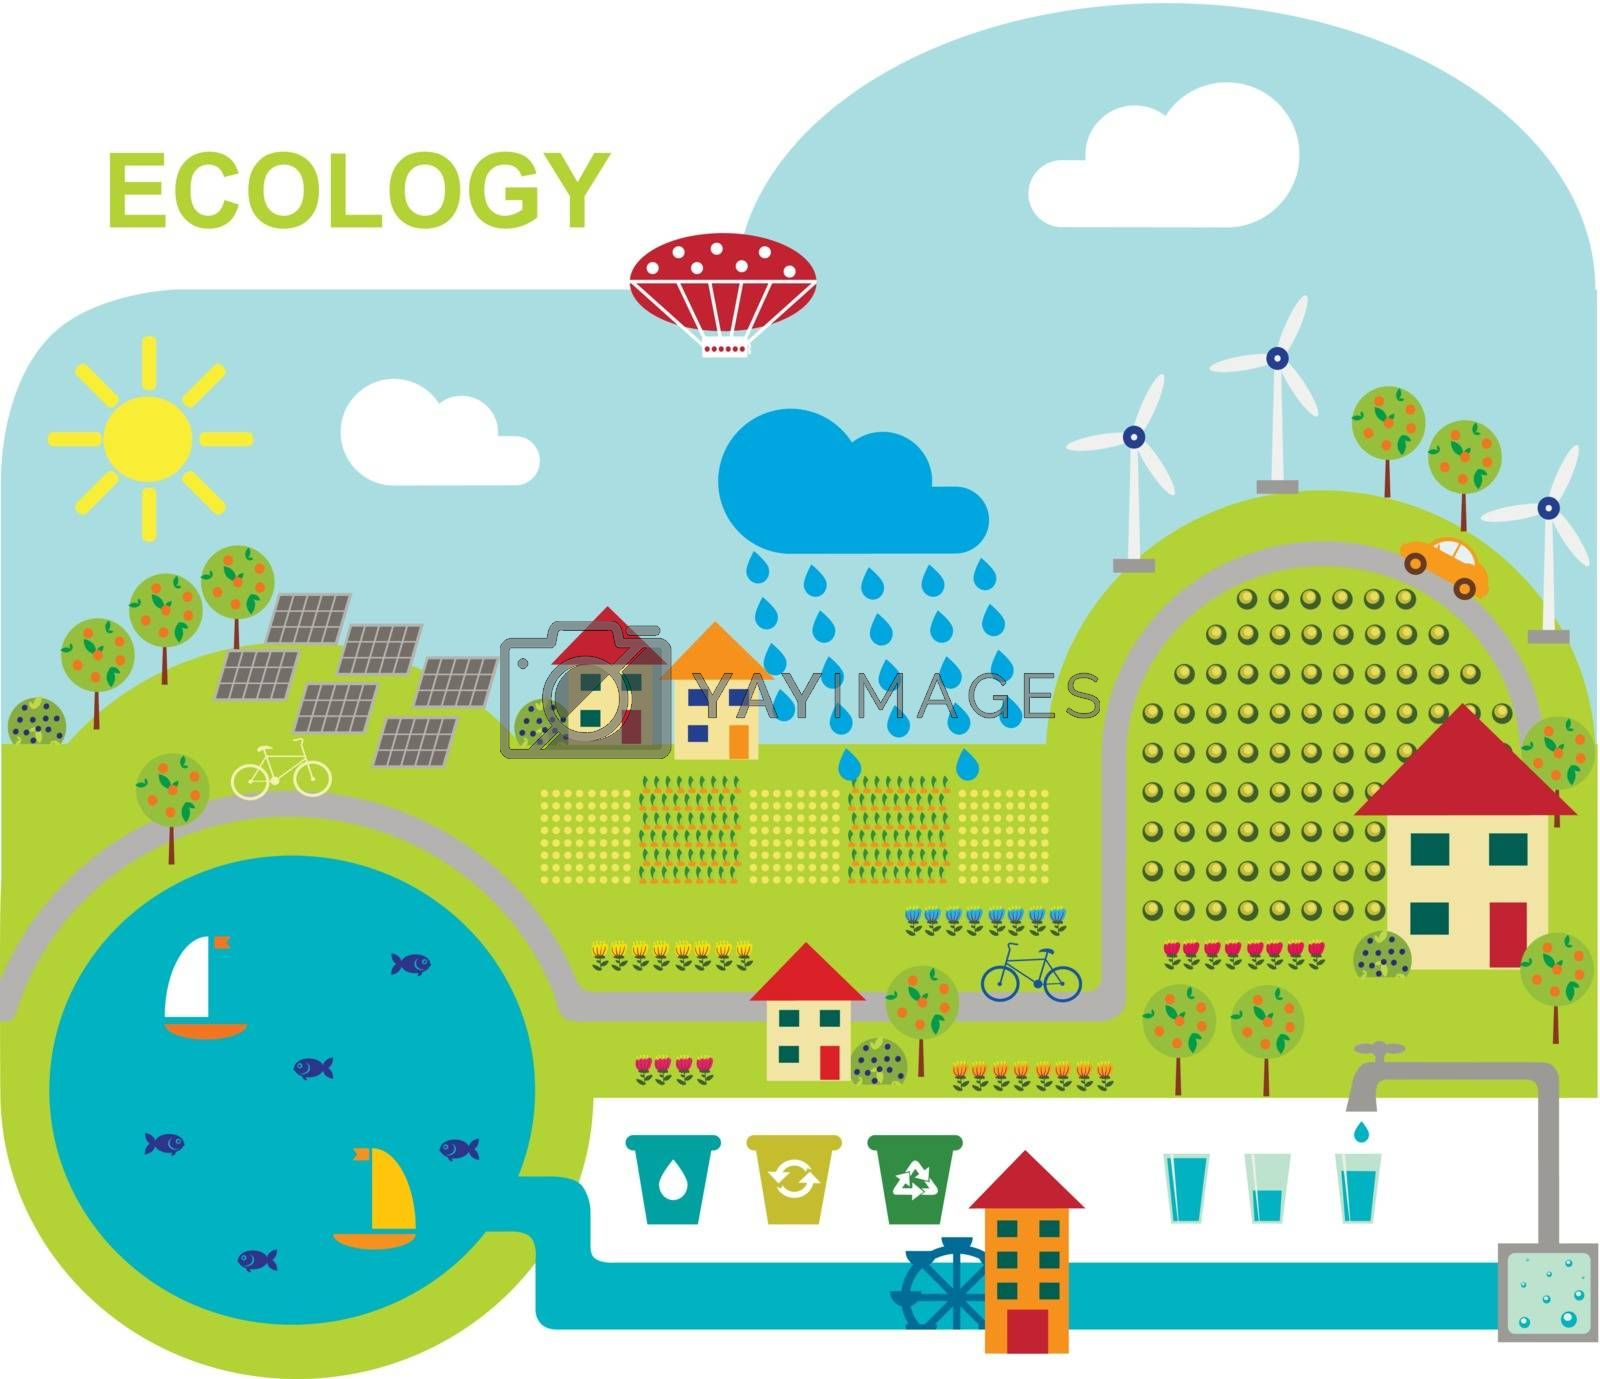 Vector illustration of ecologically friendly production methods